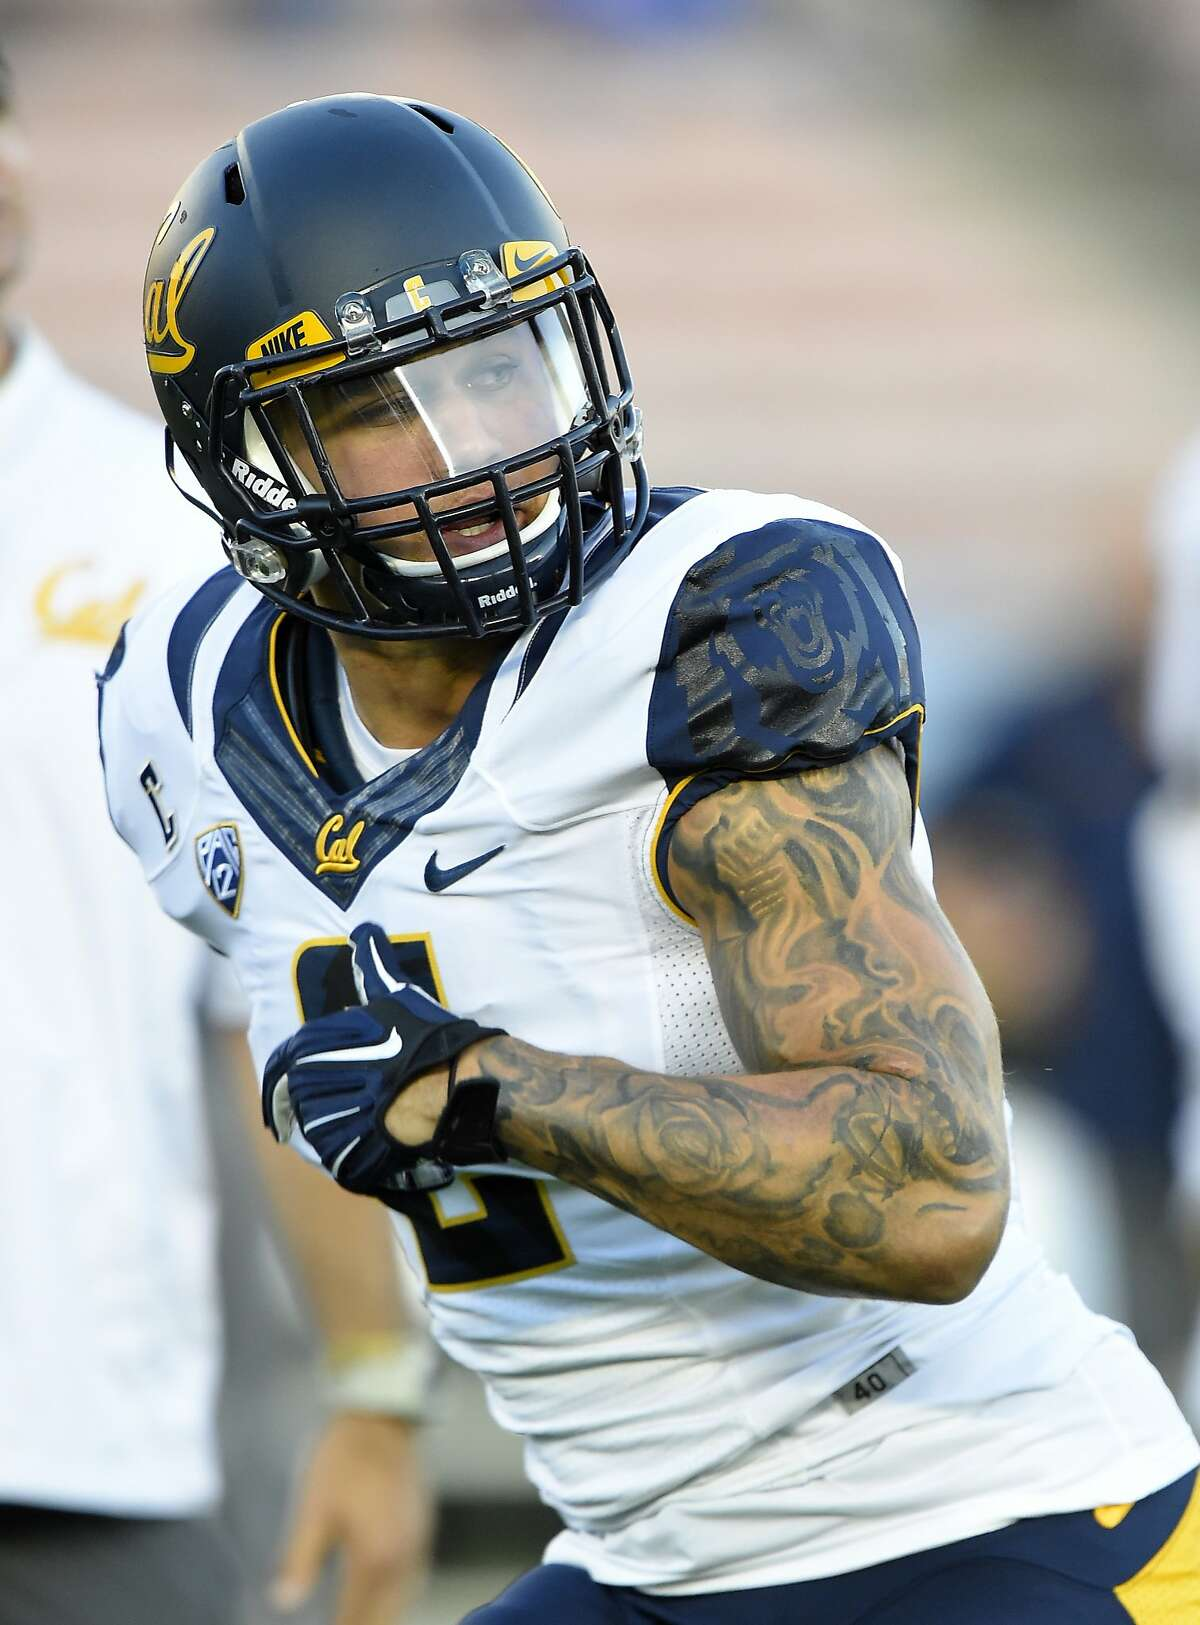 Cal running back Daniel Lasco rushed for 1,115 yards last season, but has been slowed by an injury this season.